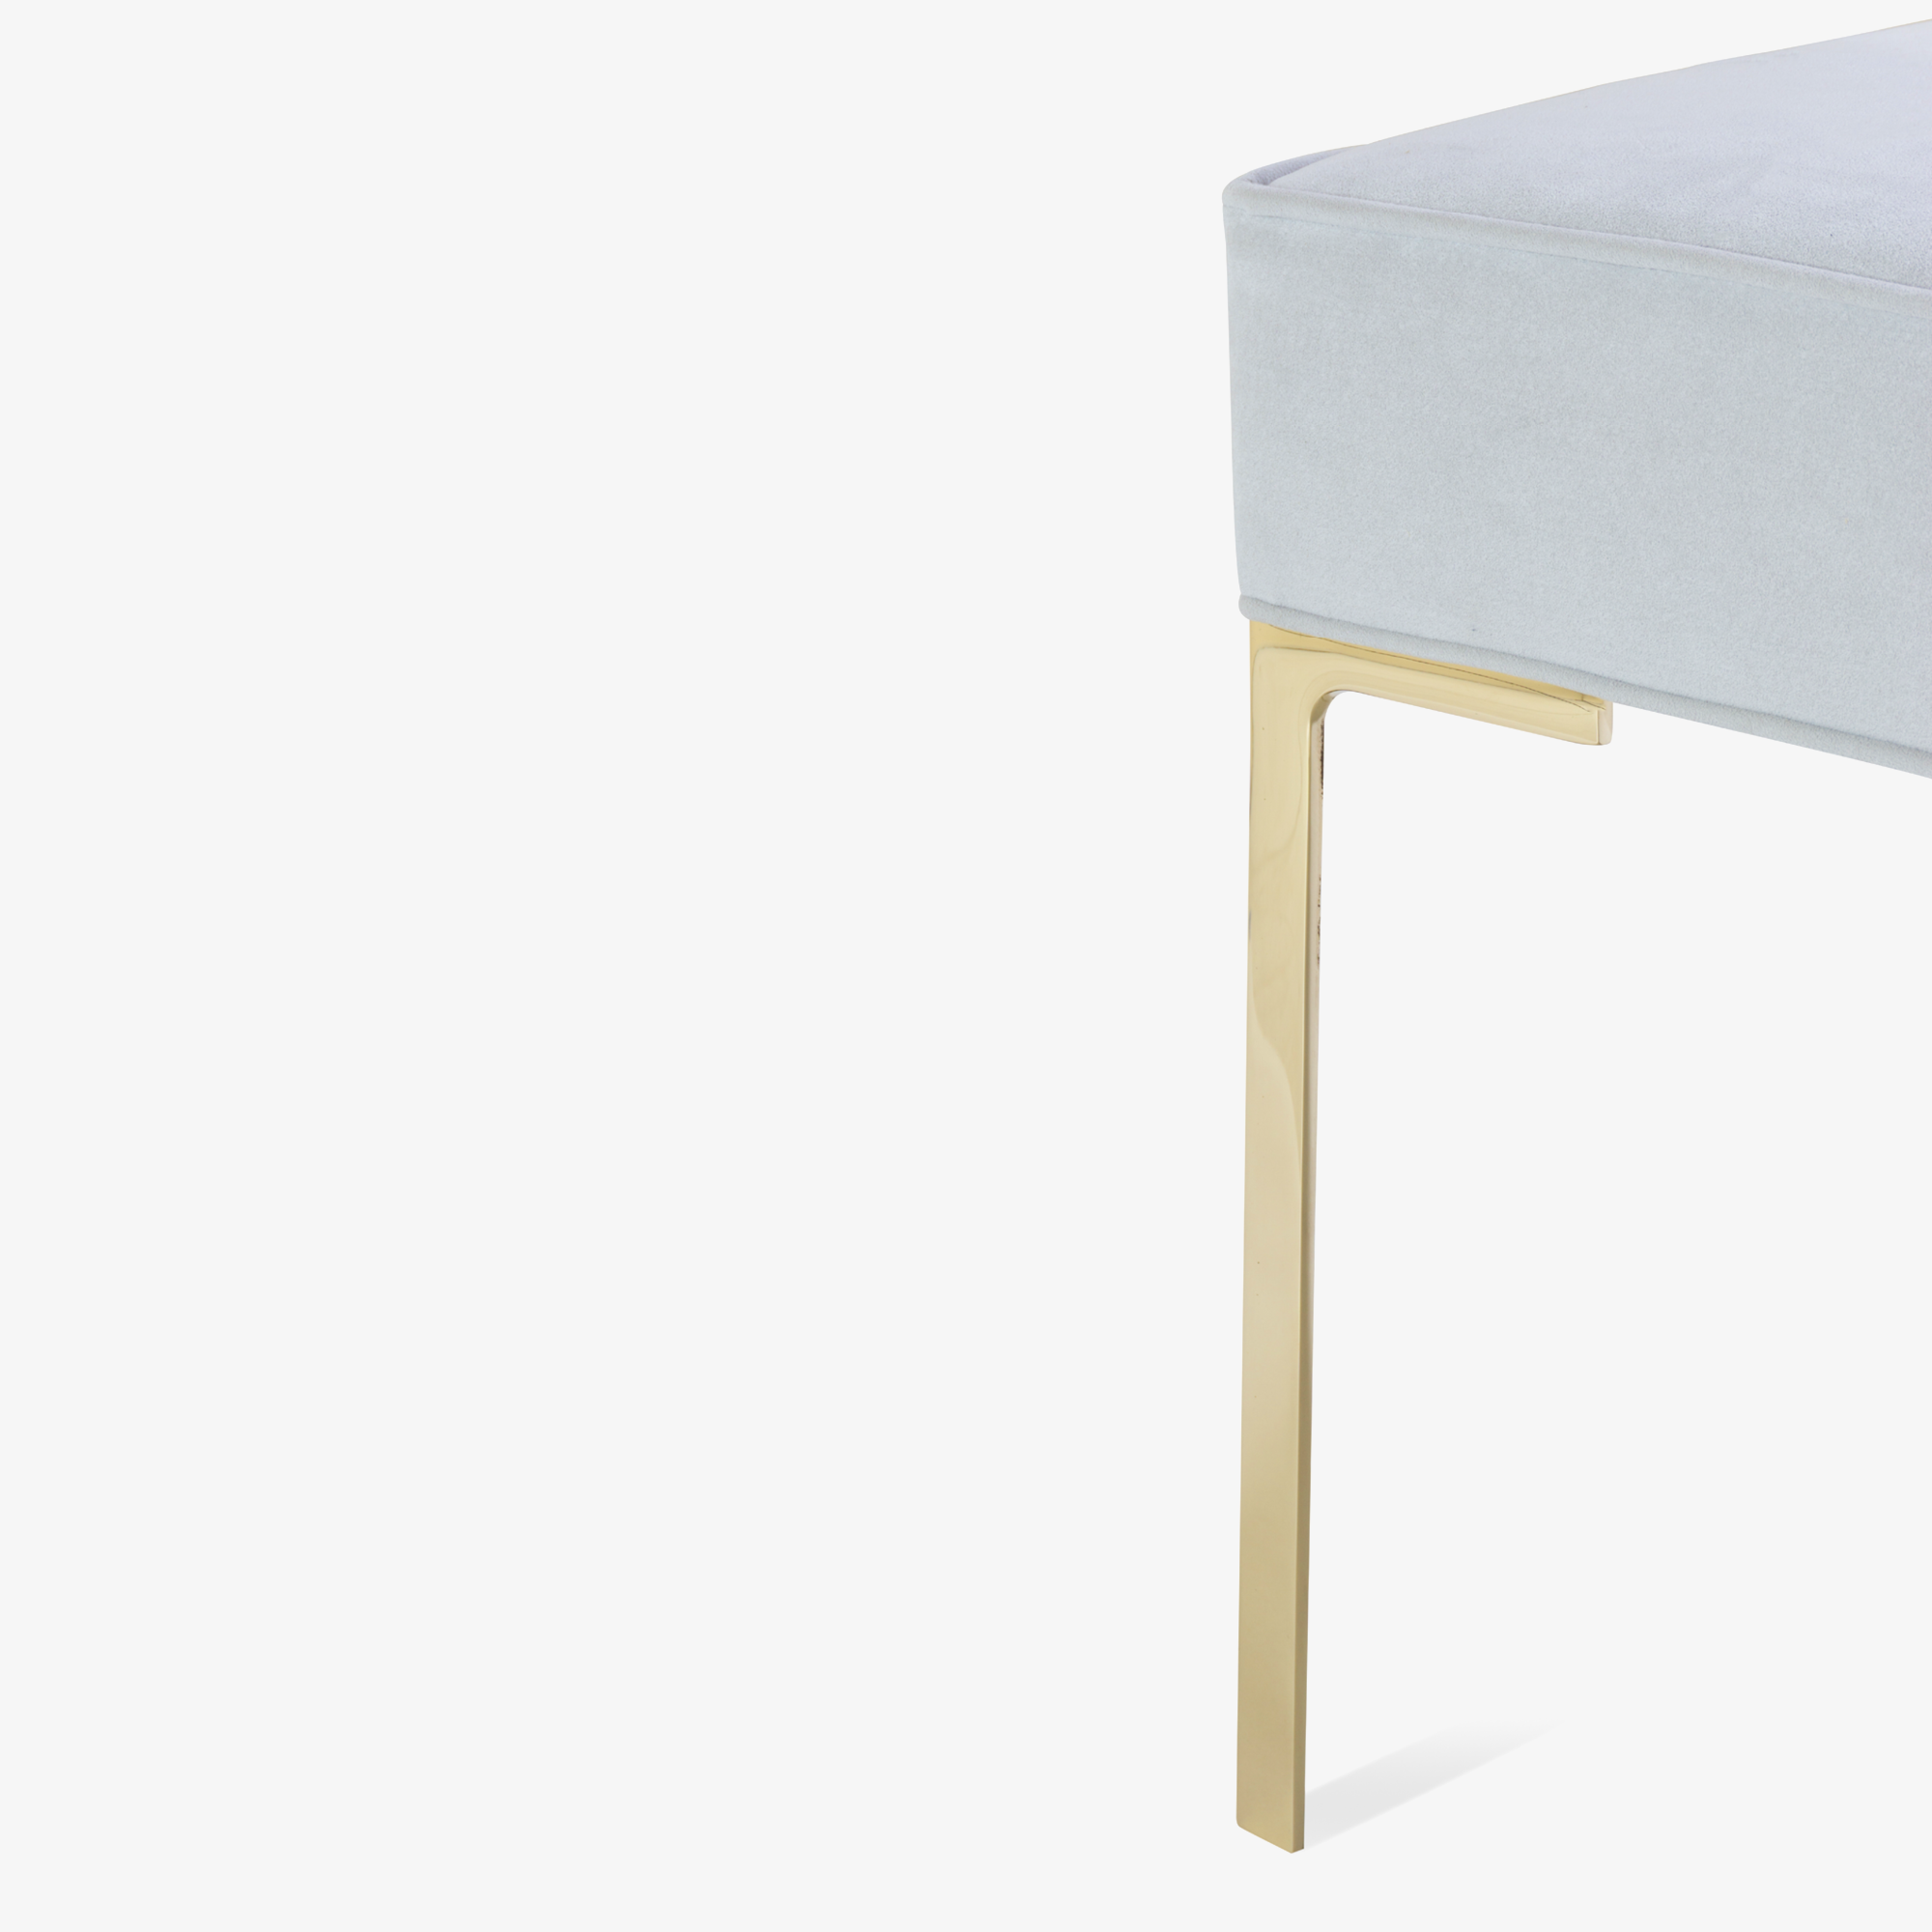 Astor 60%22 Brass Bench in Dove Luxe Suede7.png